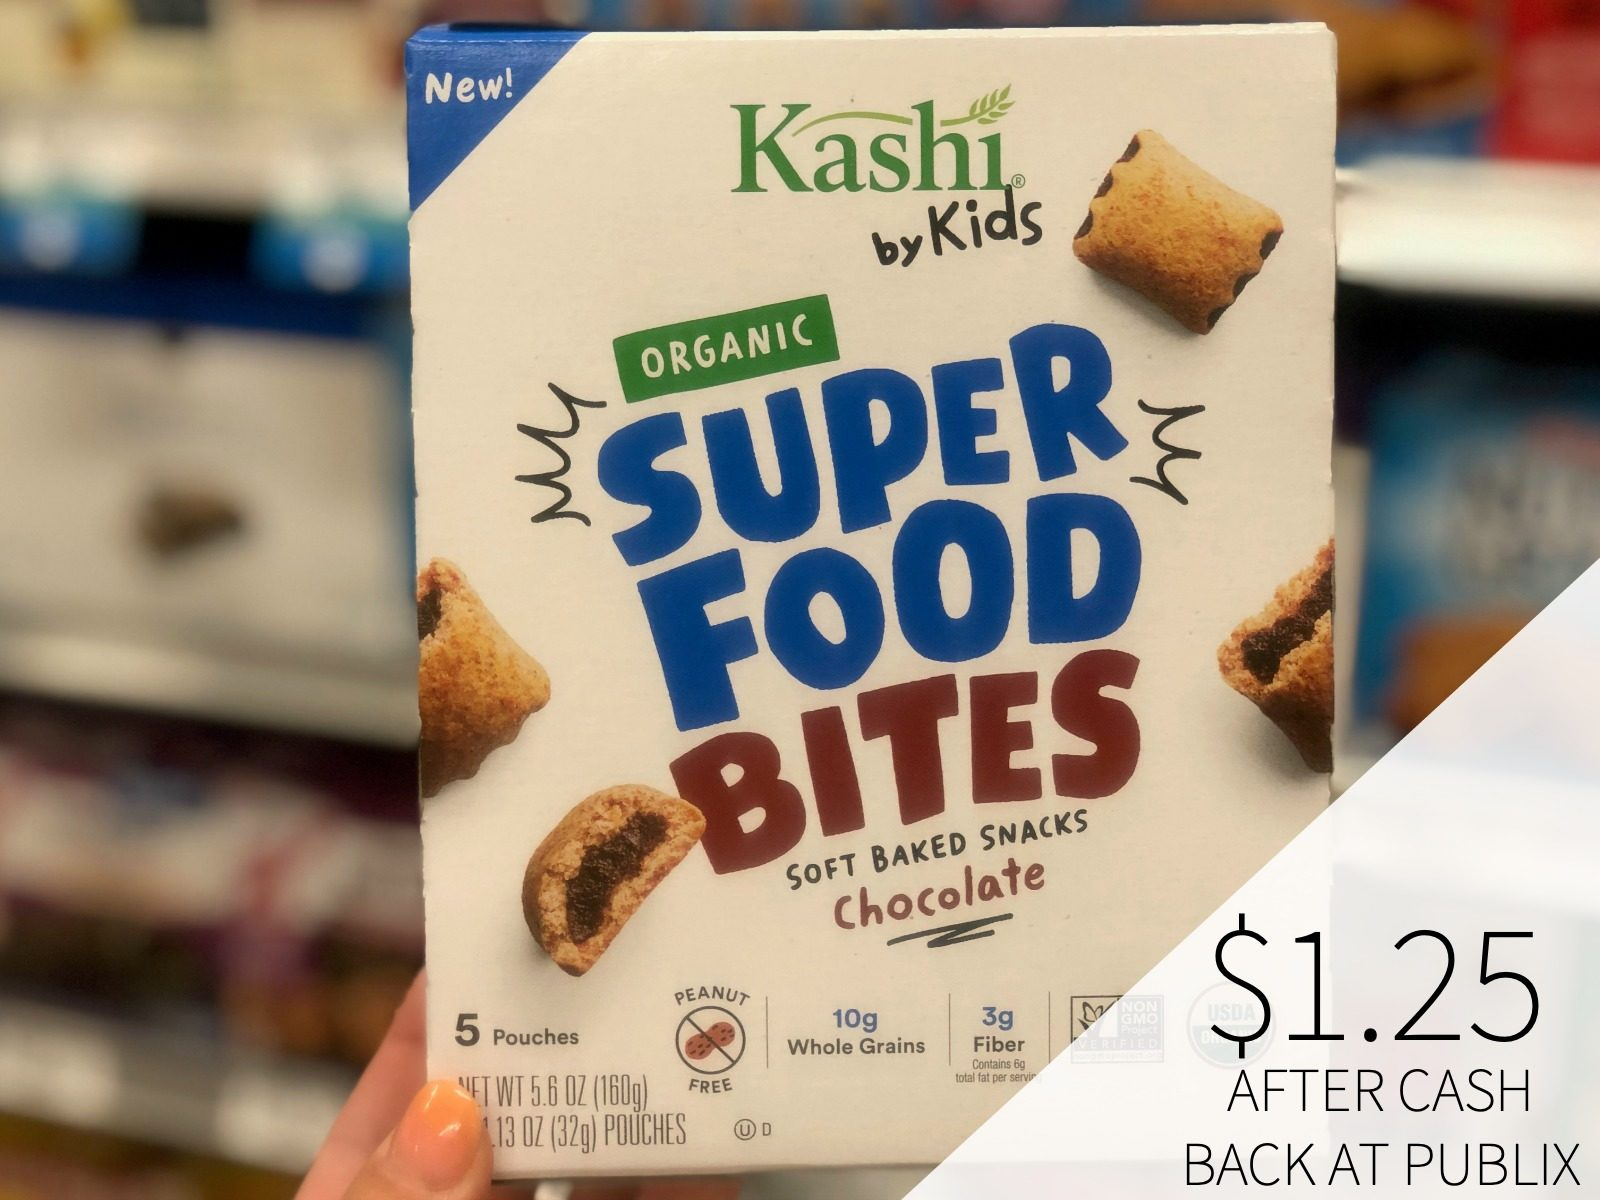 Kashi By Kids Snack Bites As Low As $1.25 Per Box on I Heart Publix